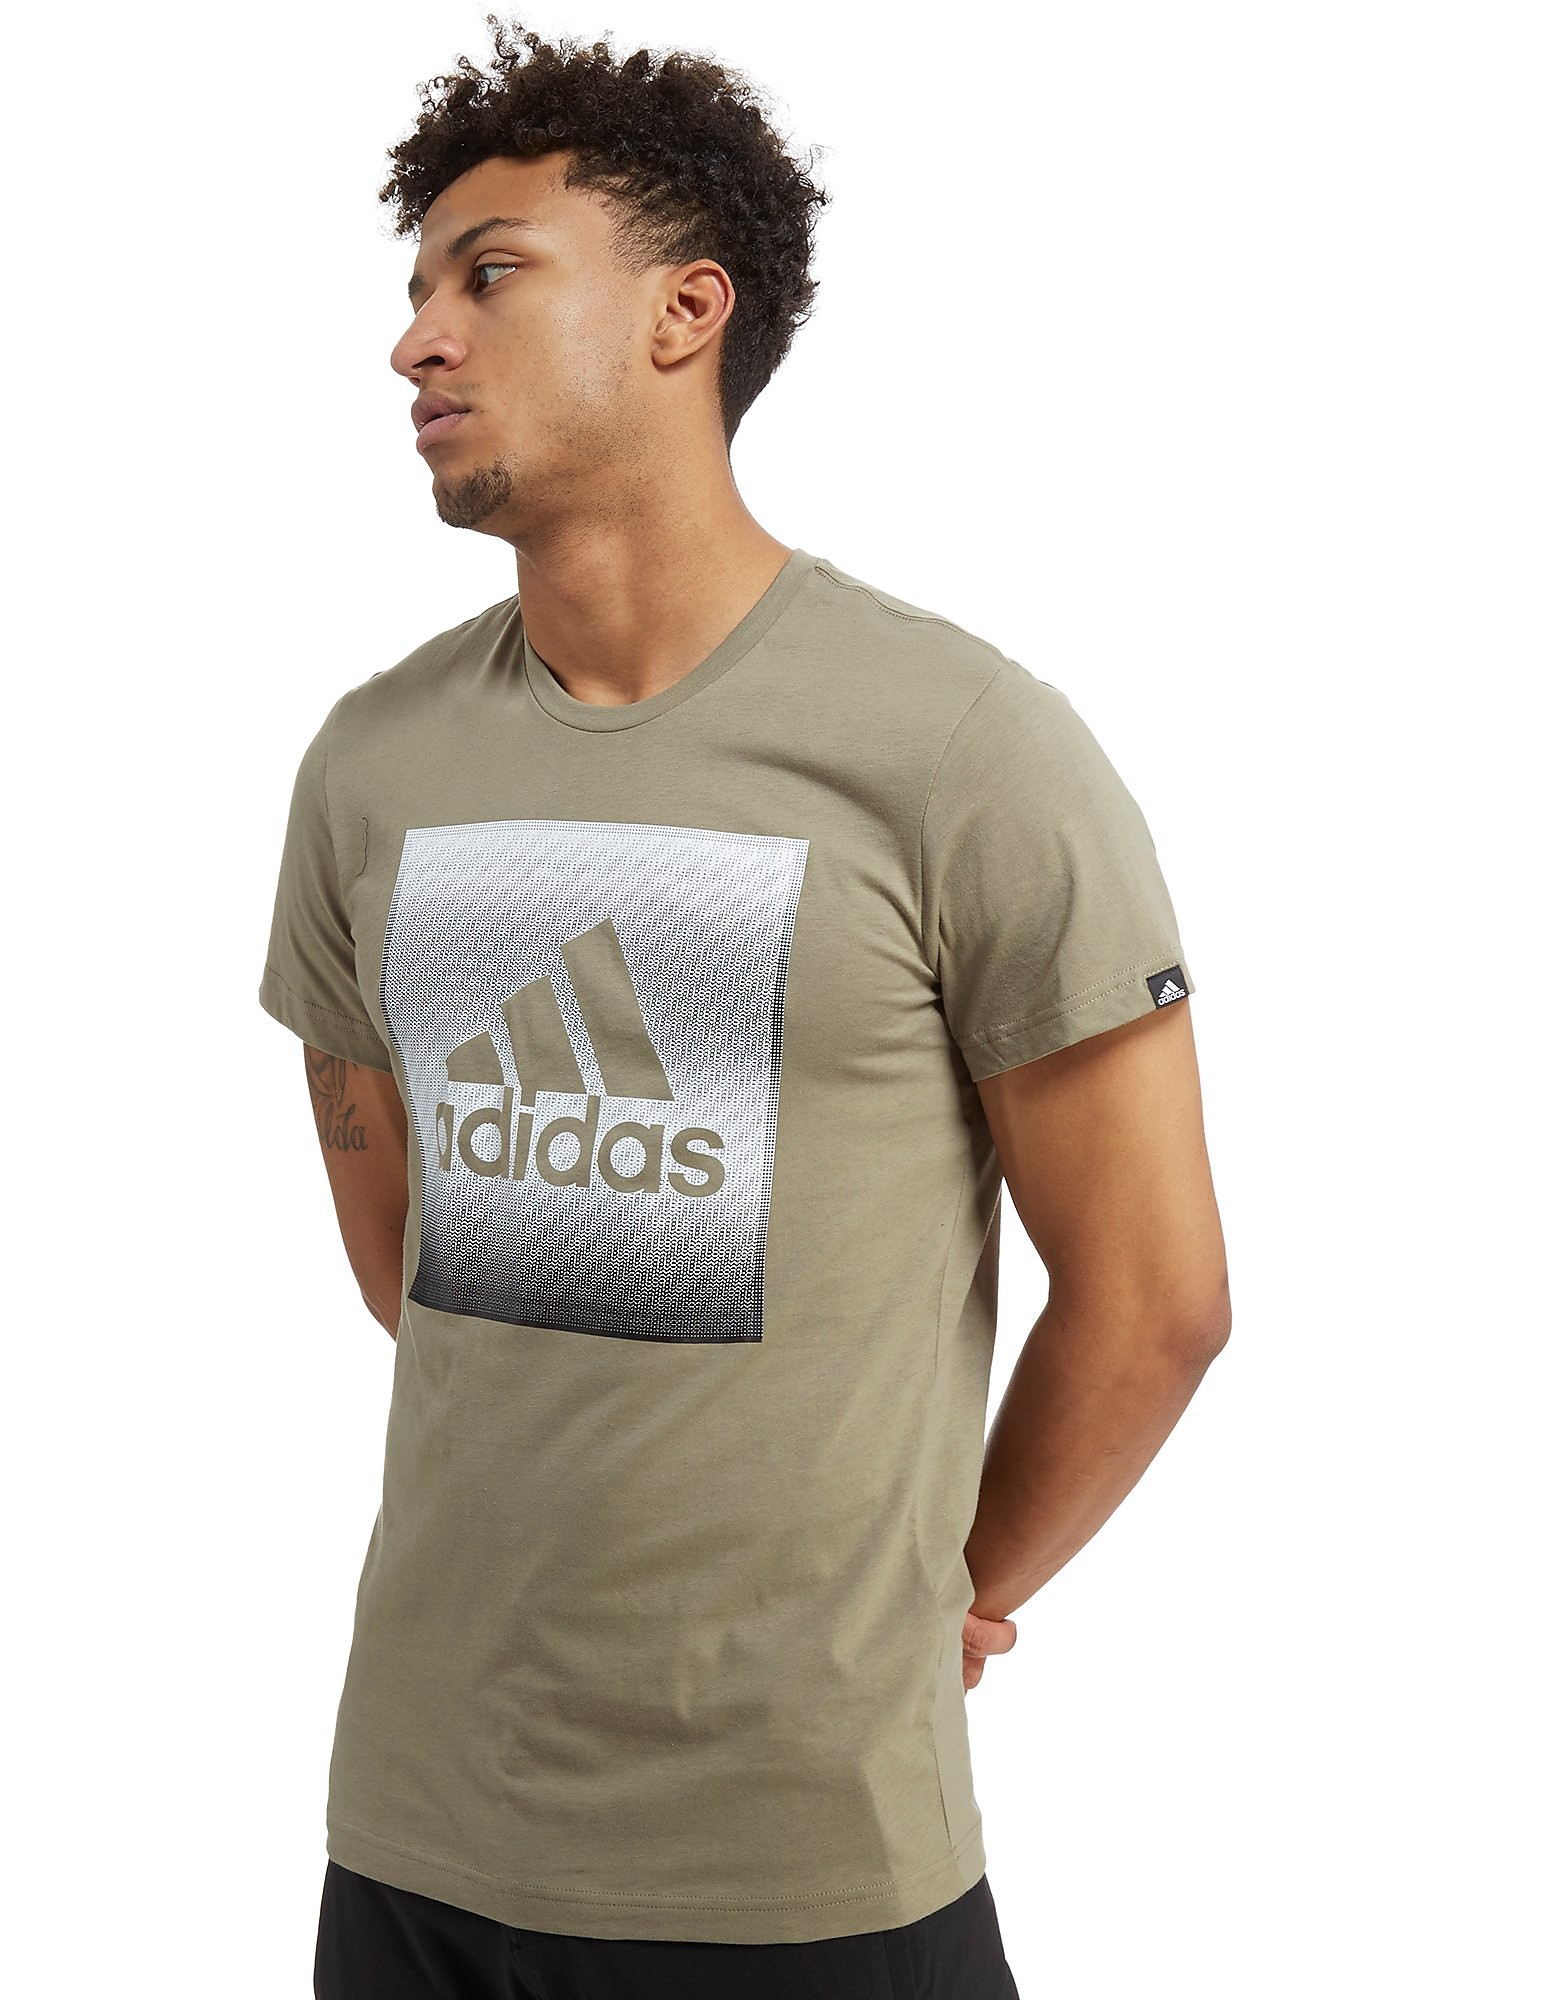 adidas Faded Box Logo T-Shirt